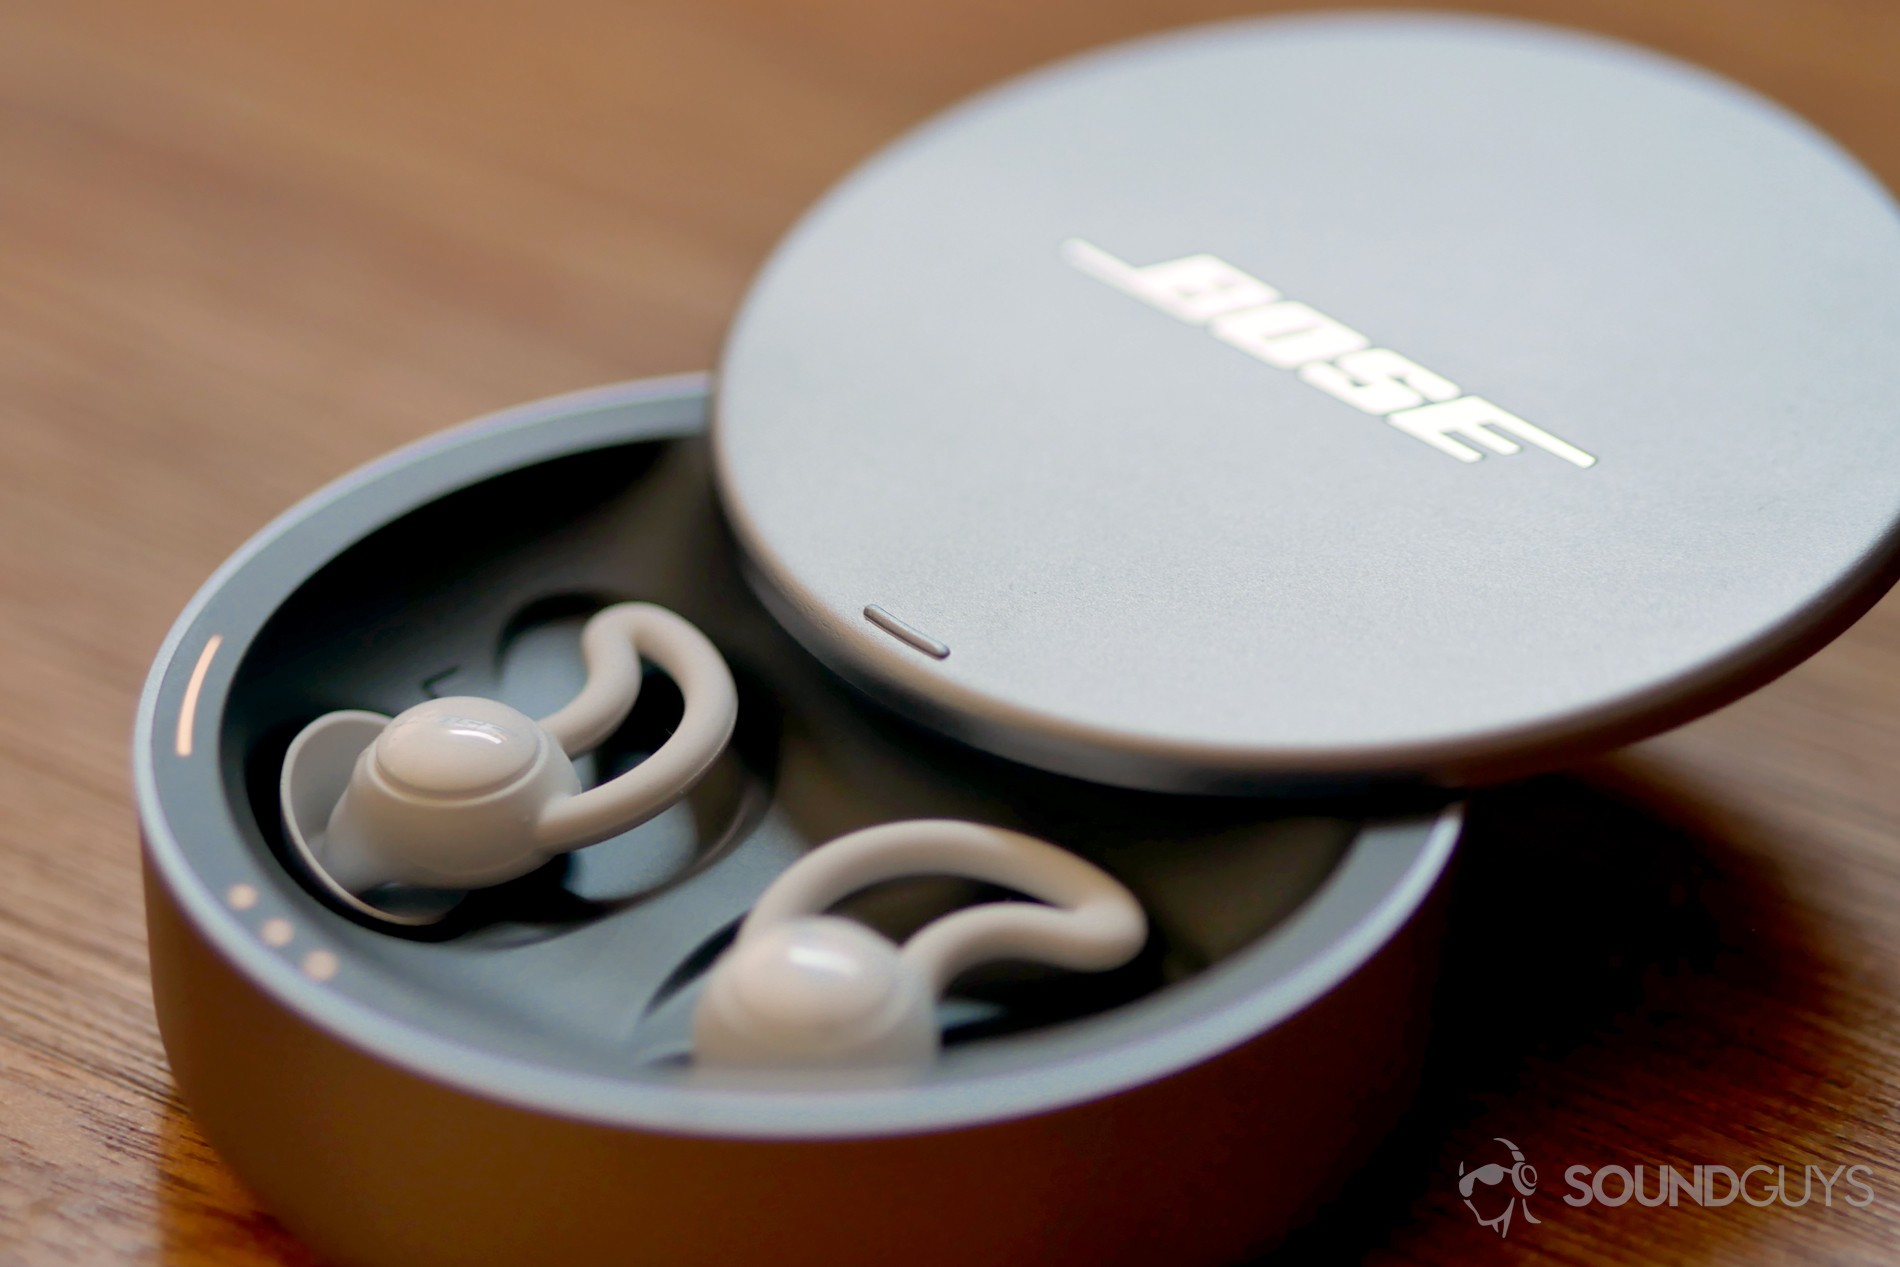 Bose Sleepbuds review: Drown out that hum in your 'drum - SoundGuys